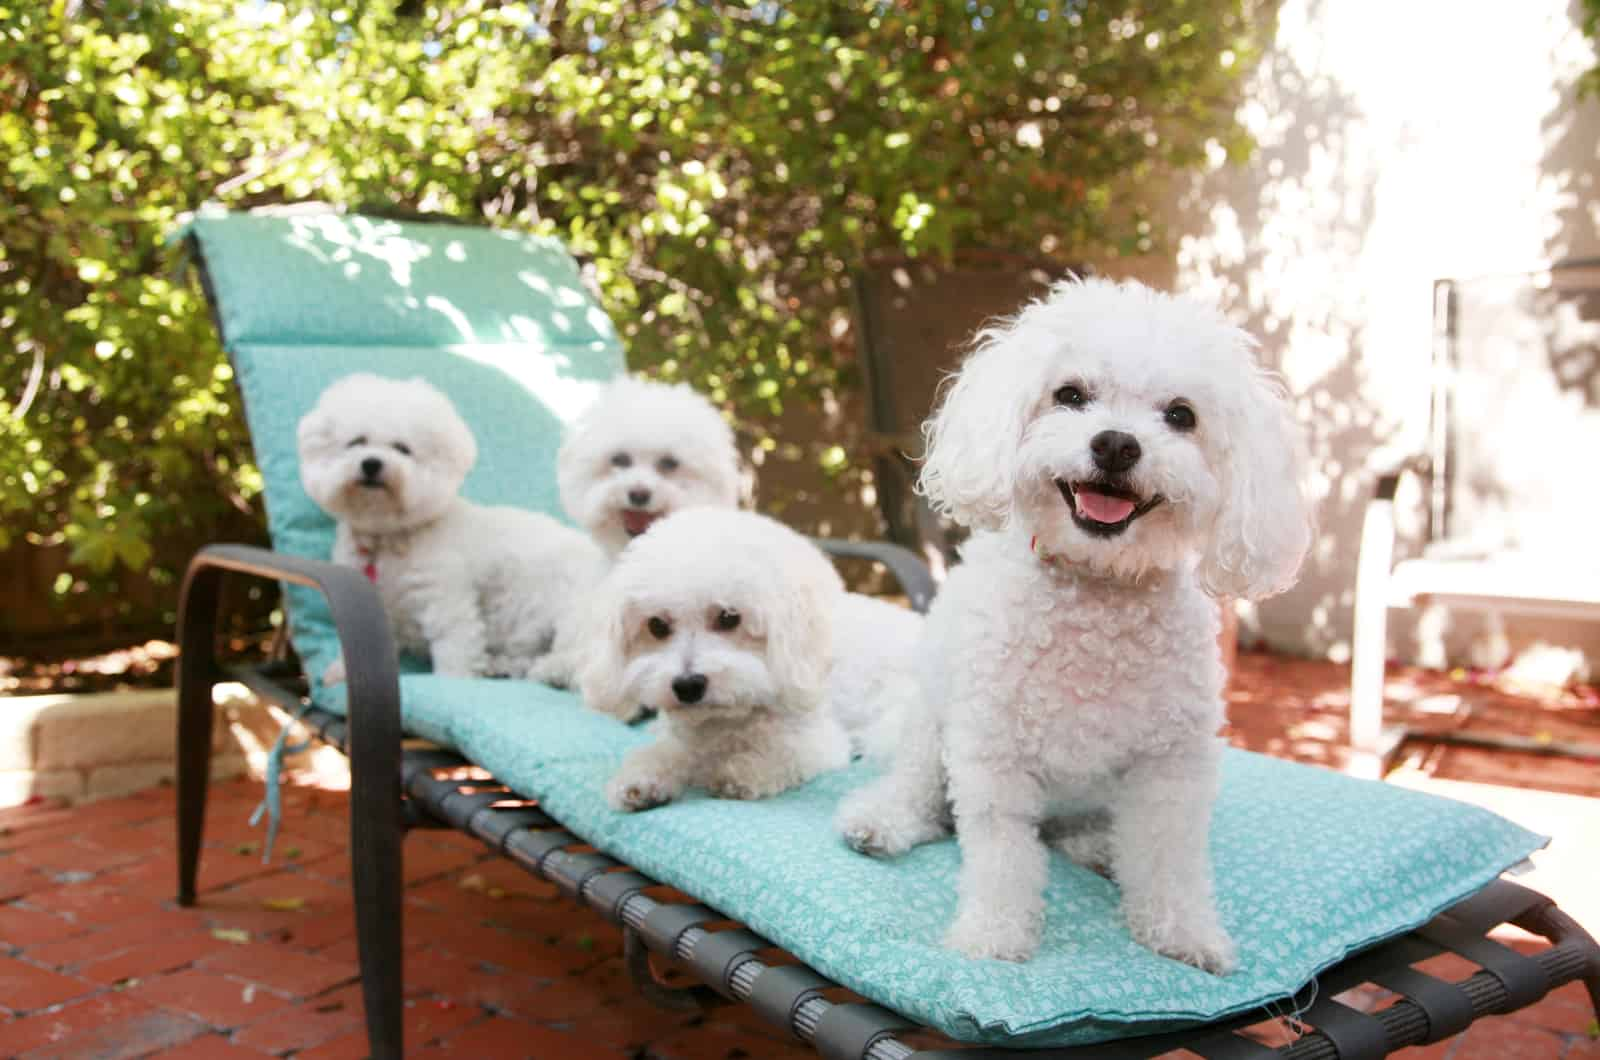 bichon frise dogs resting on a chair